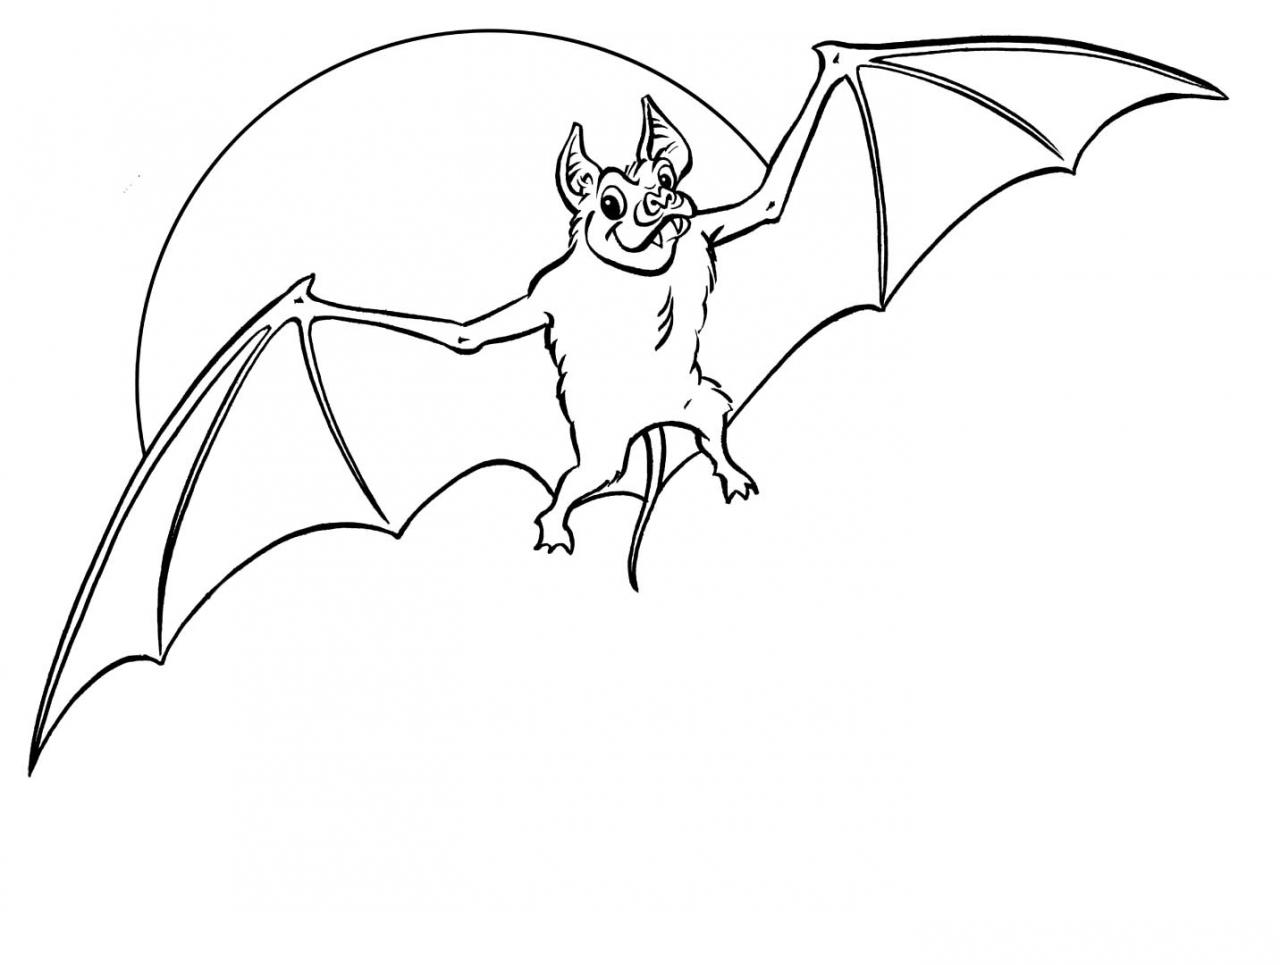 free printable halloween coloring pages bats free printable bat coloring pages for kids pages printable halloween coloring free bats